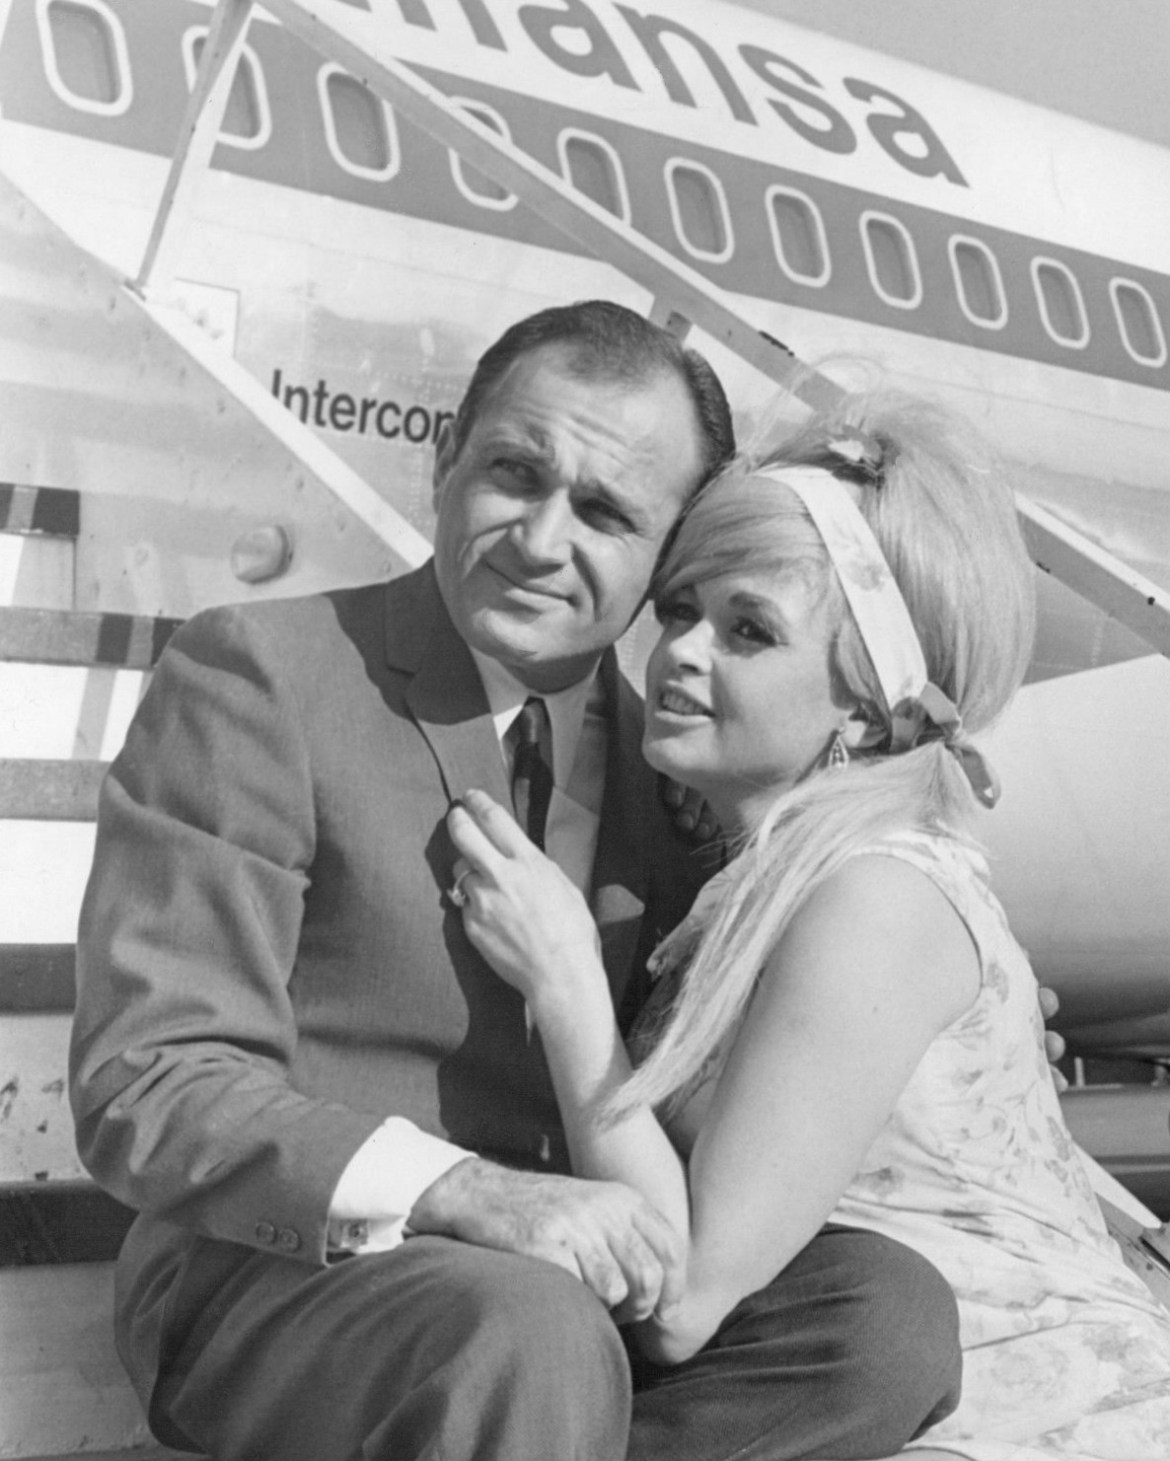 File:Jayne Mansfield and Sam Brody May 1967.jpg - Wikimedia Commons